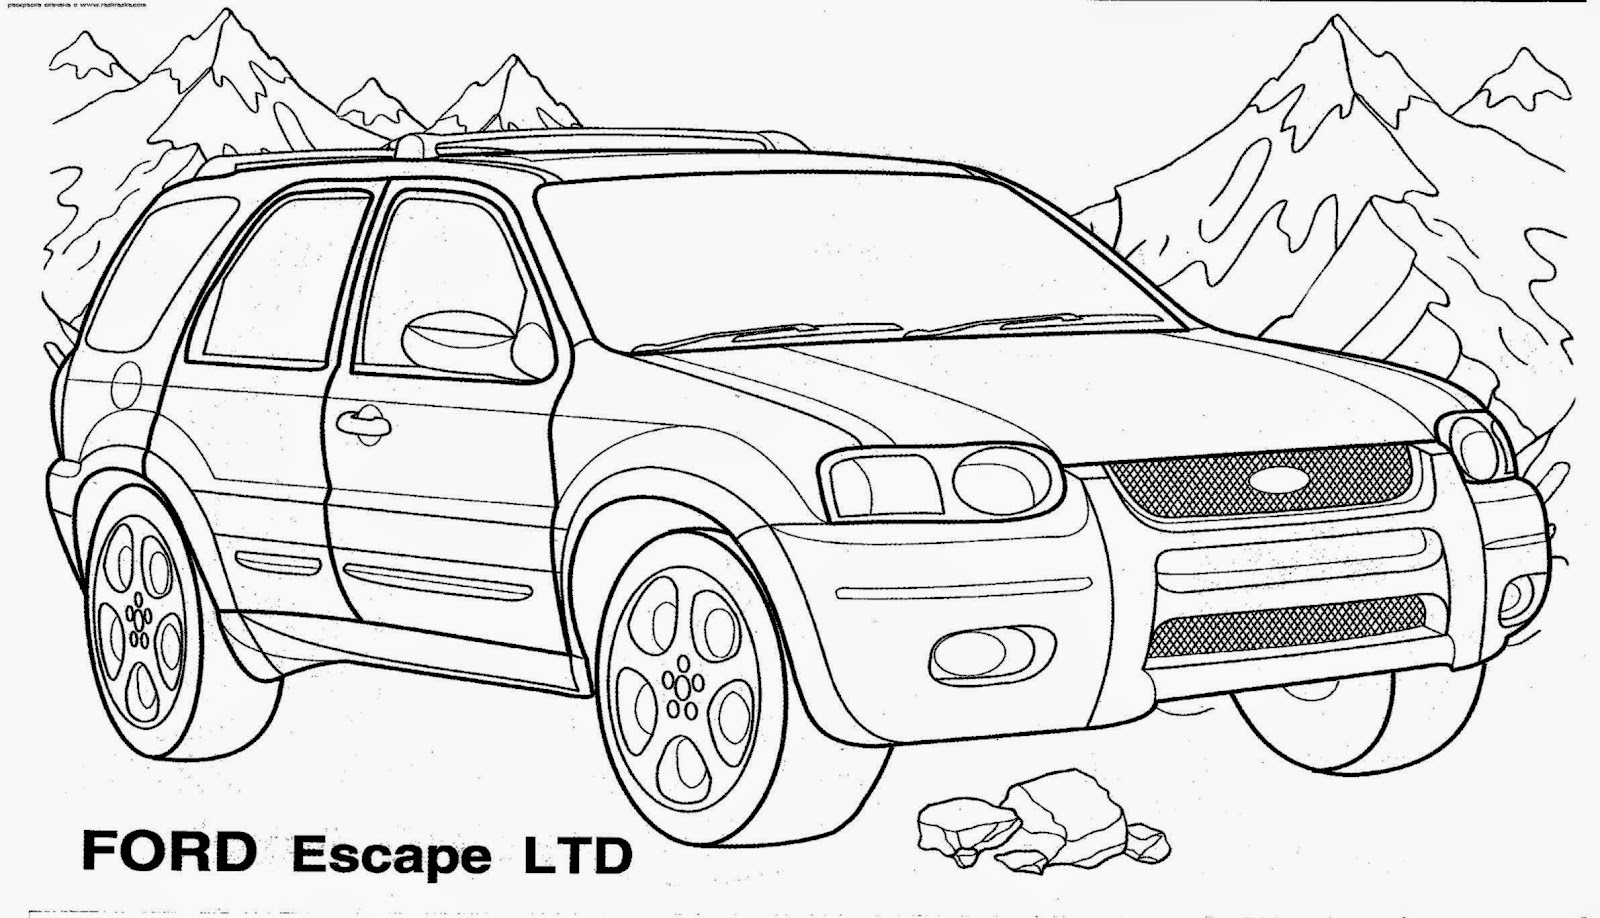 All Car Coloring Pages : Pictures of cars to color free coloring